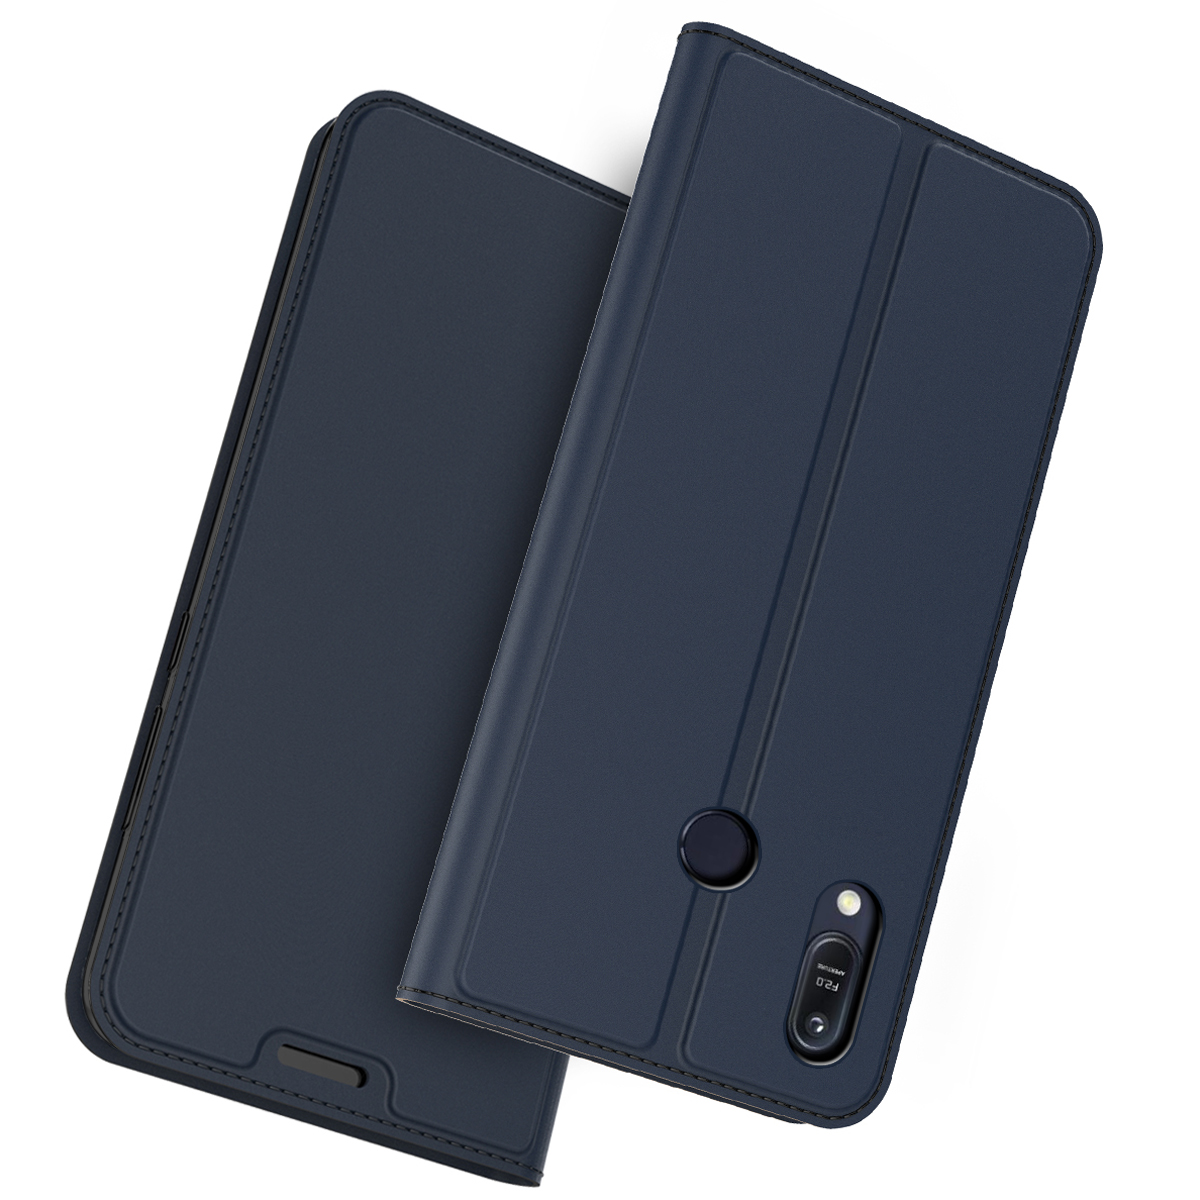 For Asus Zenfone Max M2 ZB633KL Case PU Leather Flip Stand Wallet Cover For Asus Zenfone Max Pro M2 ZB631KL ZB602KL Case Card-in Wallet Cases from Cellphones & Telecommunications